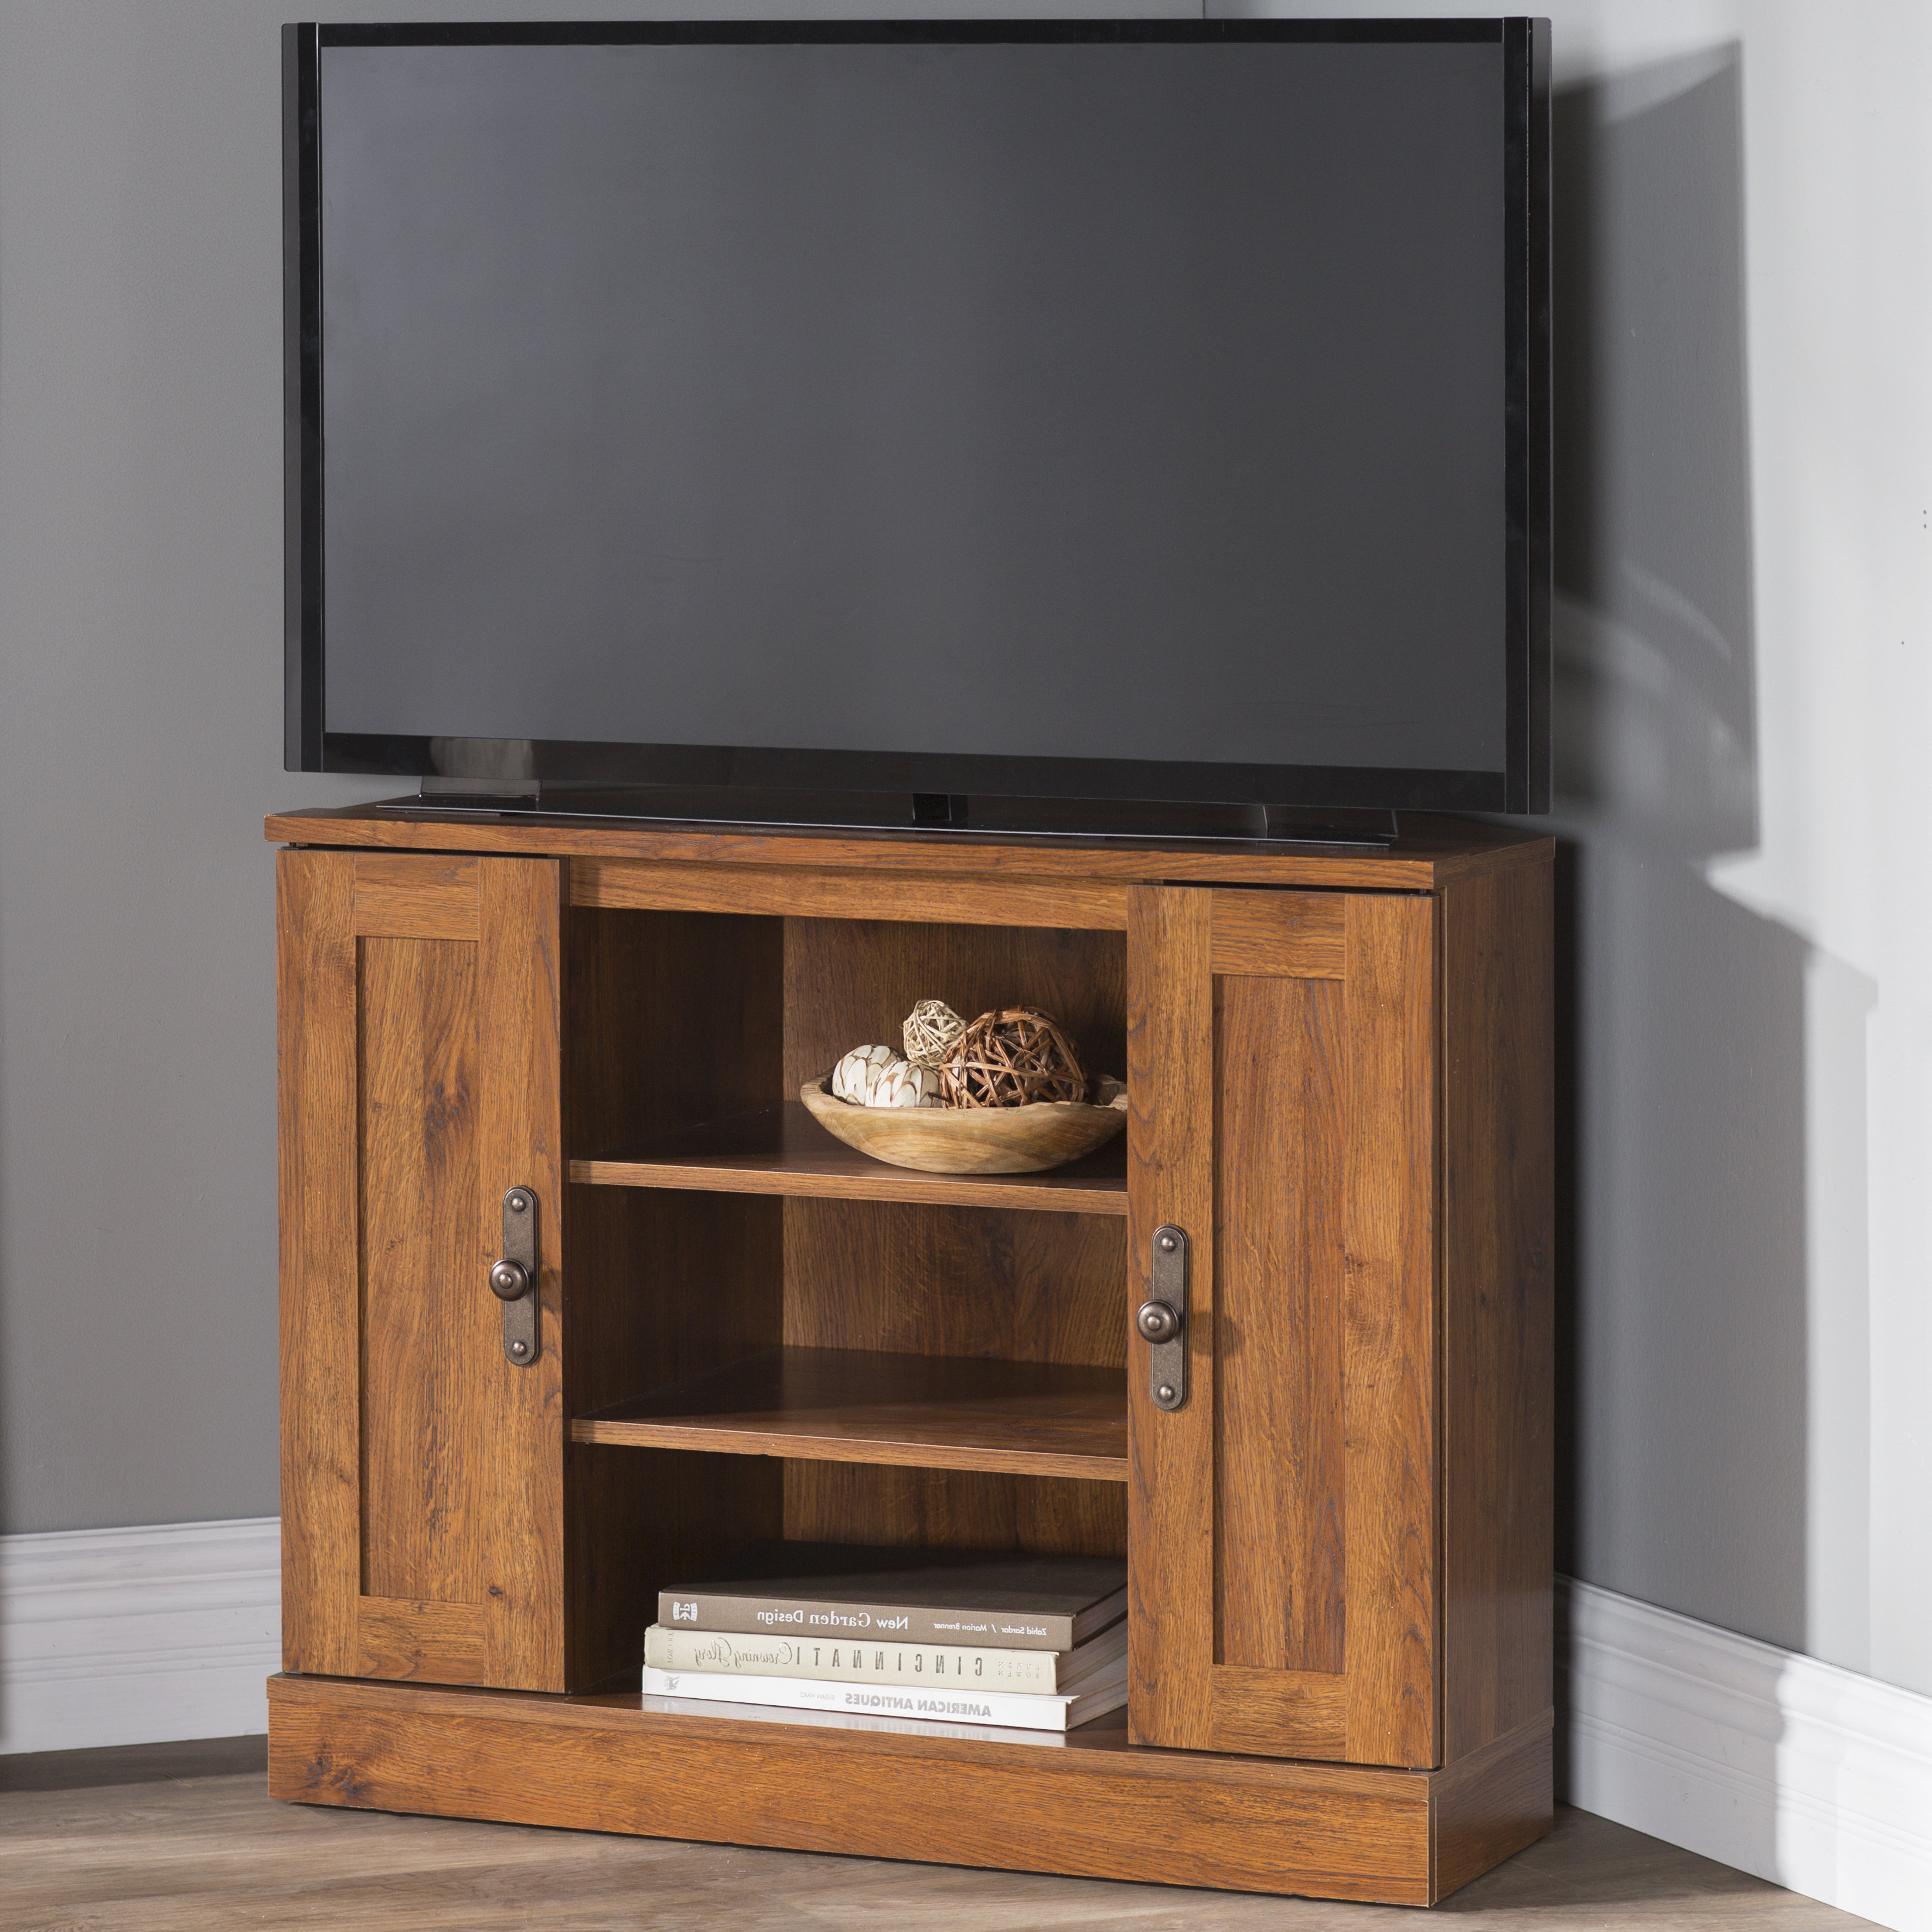 Widely Used Upright Tv Stands Inside Corner Tv Stands You'll Love (View 20 of 20)